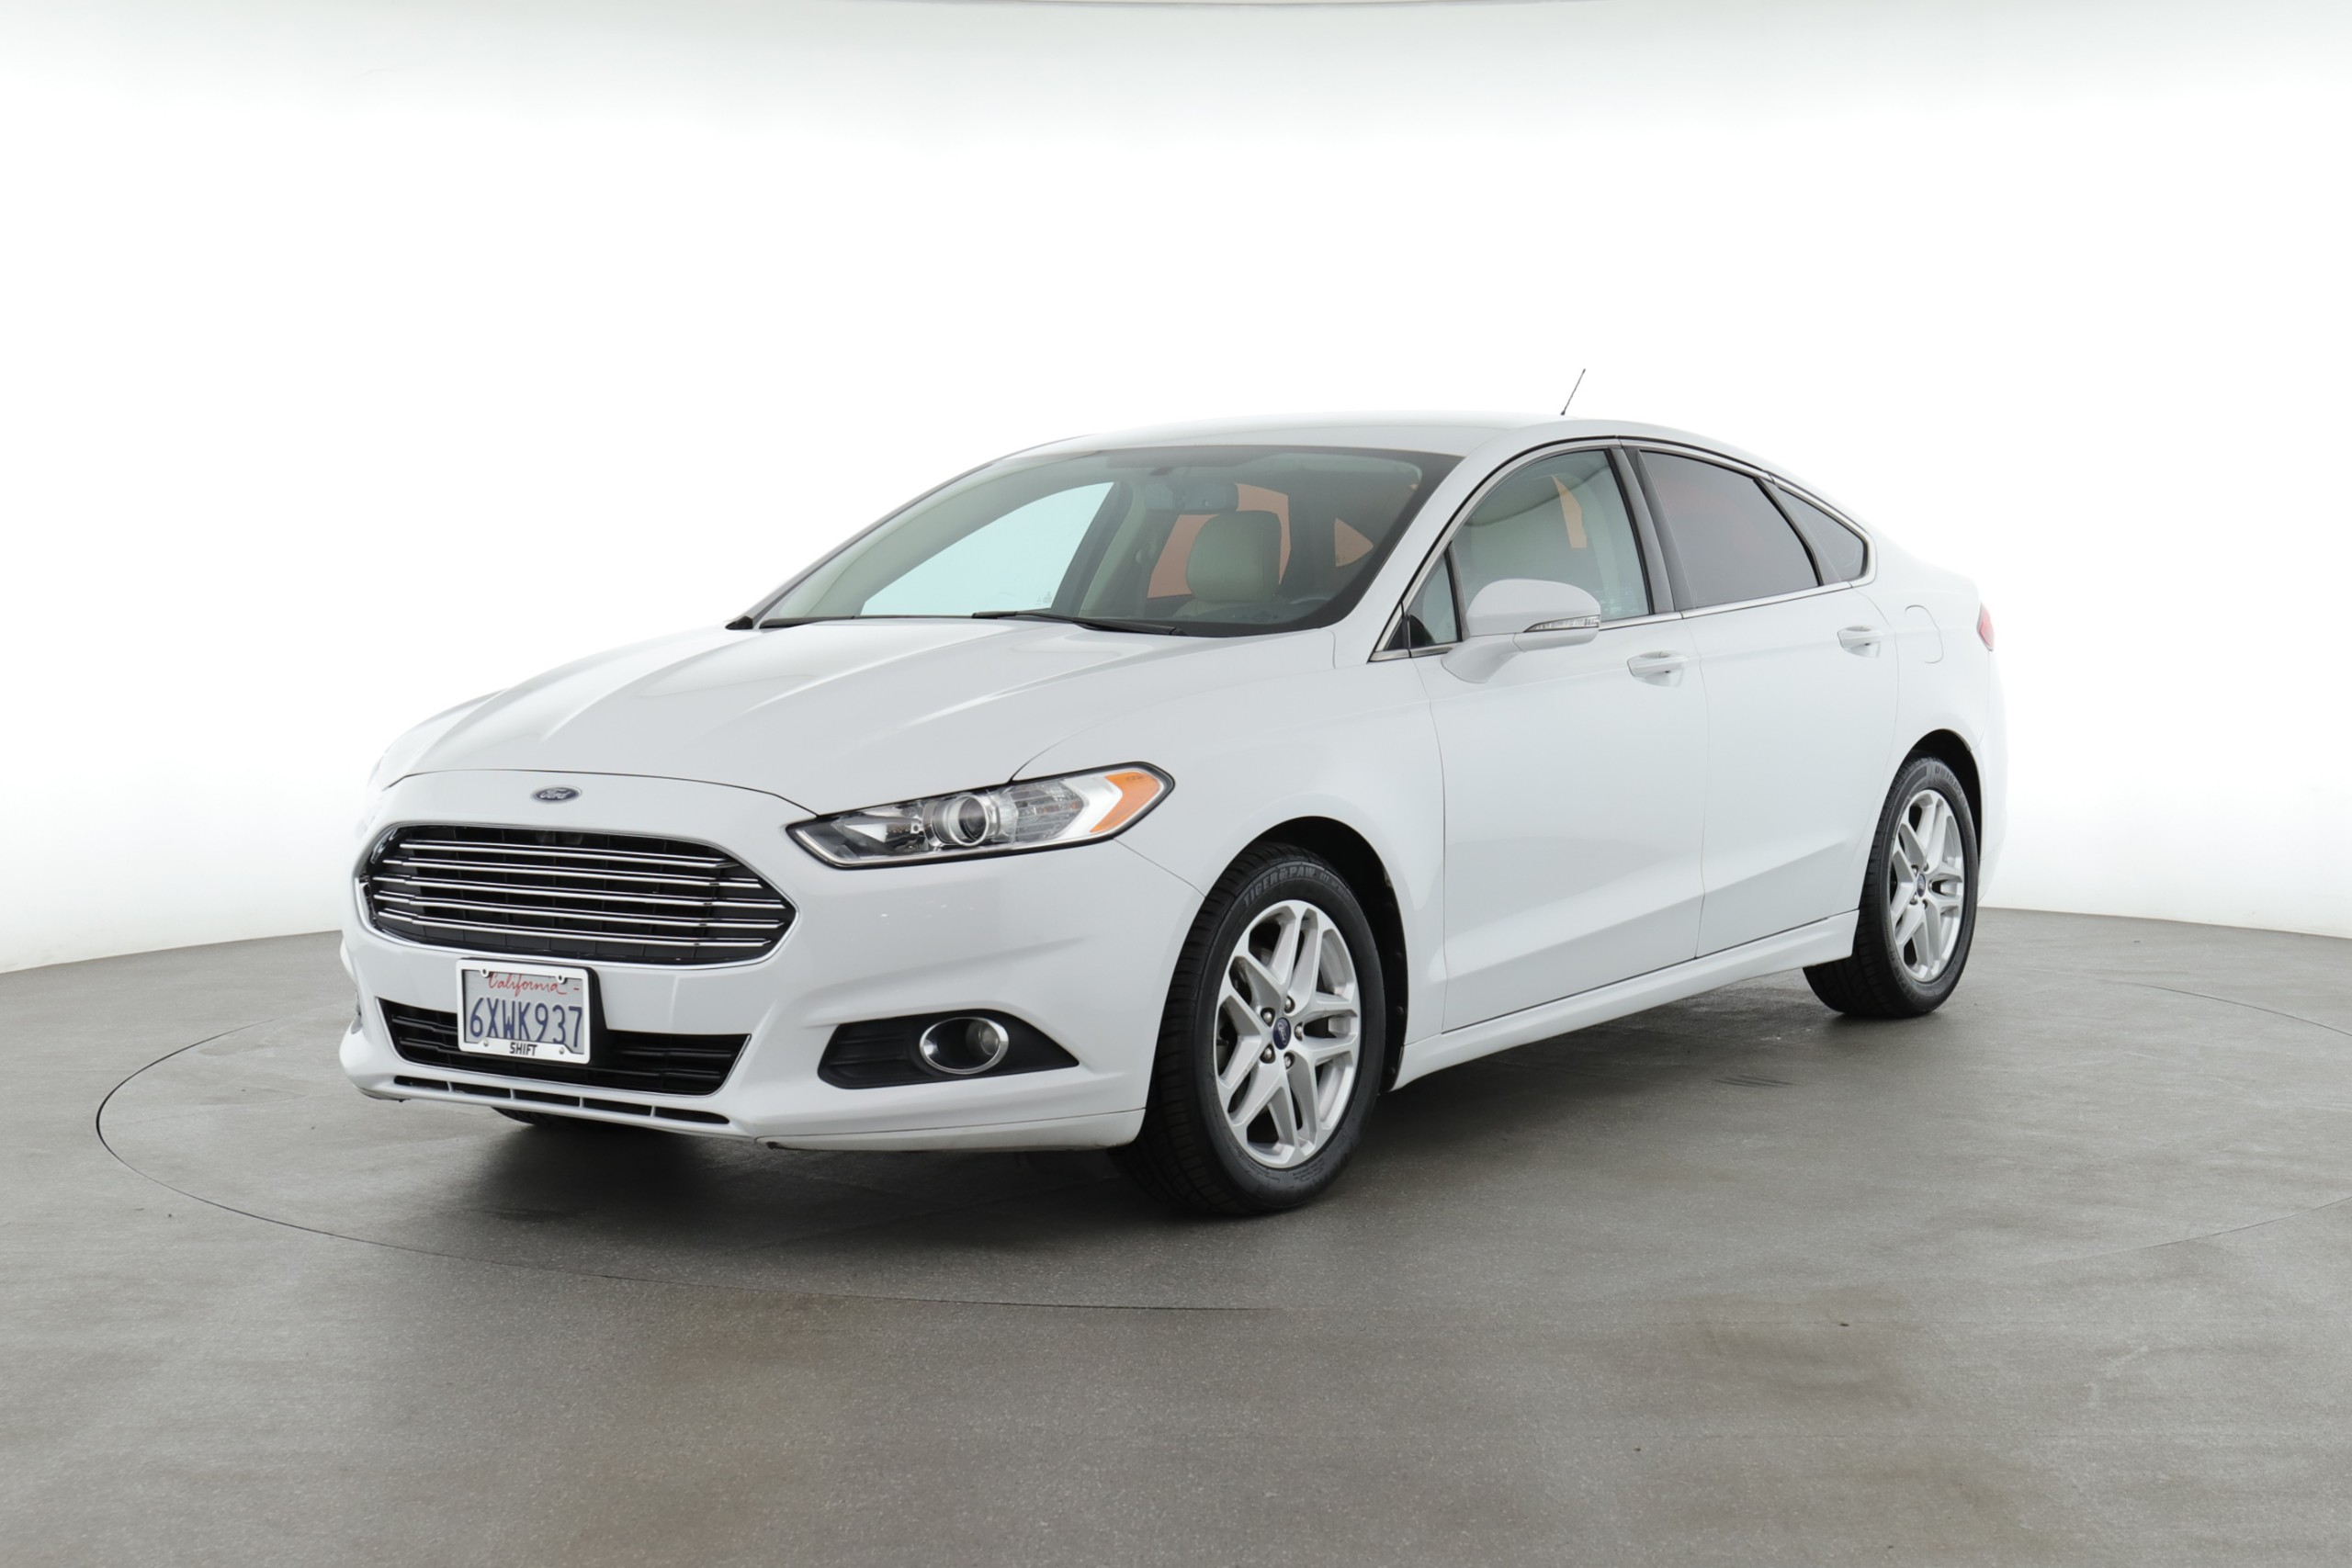 2013 Ford Fusion SE (from $12,400)